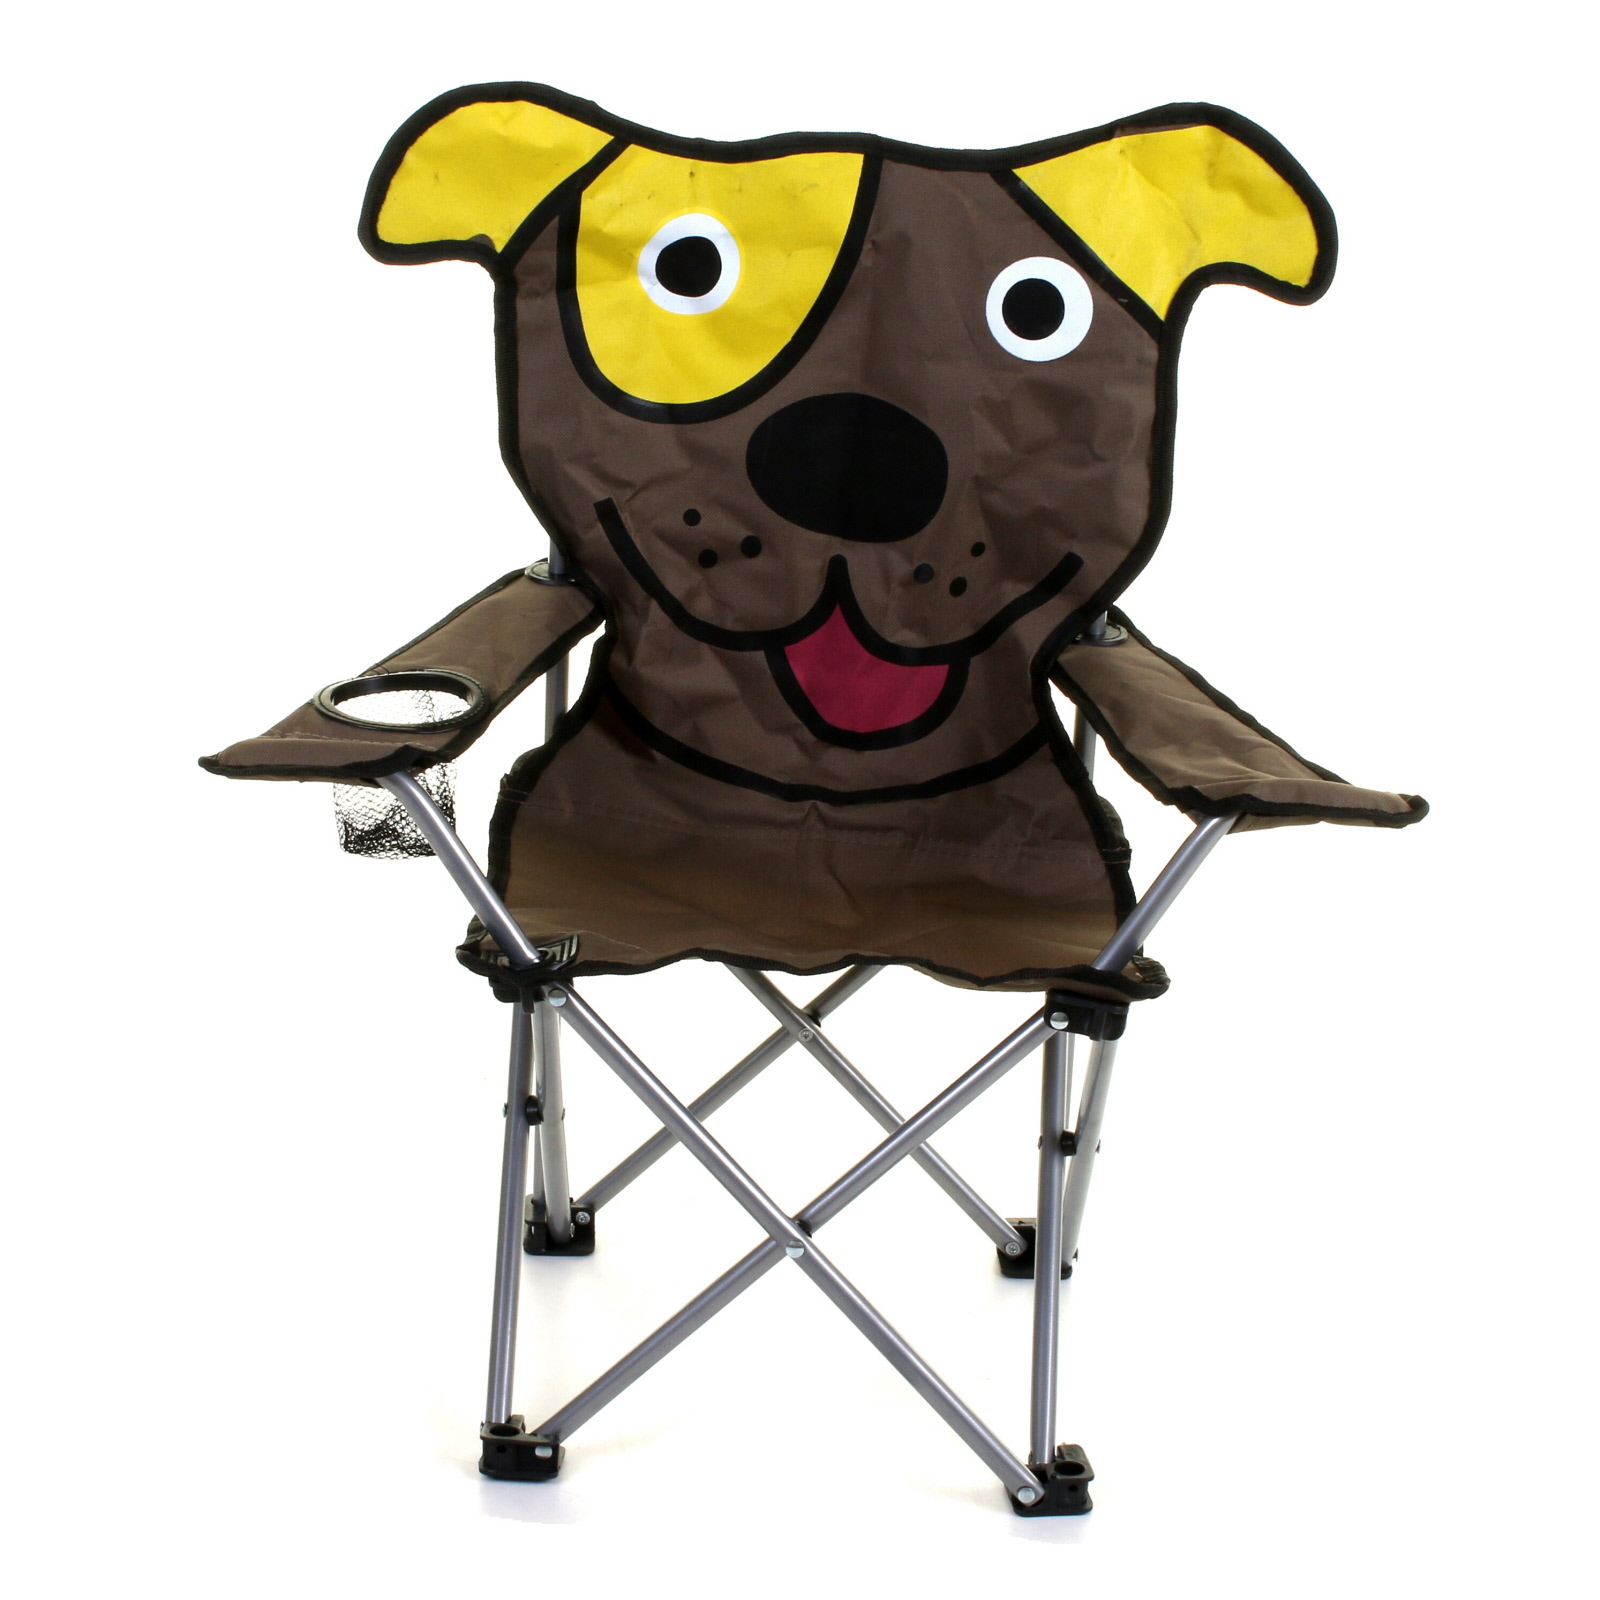 Camping Chair Kids Chidren Cartoon Animal Portable Lightweight Garden Beach Seat